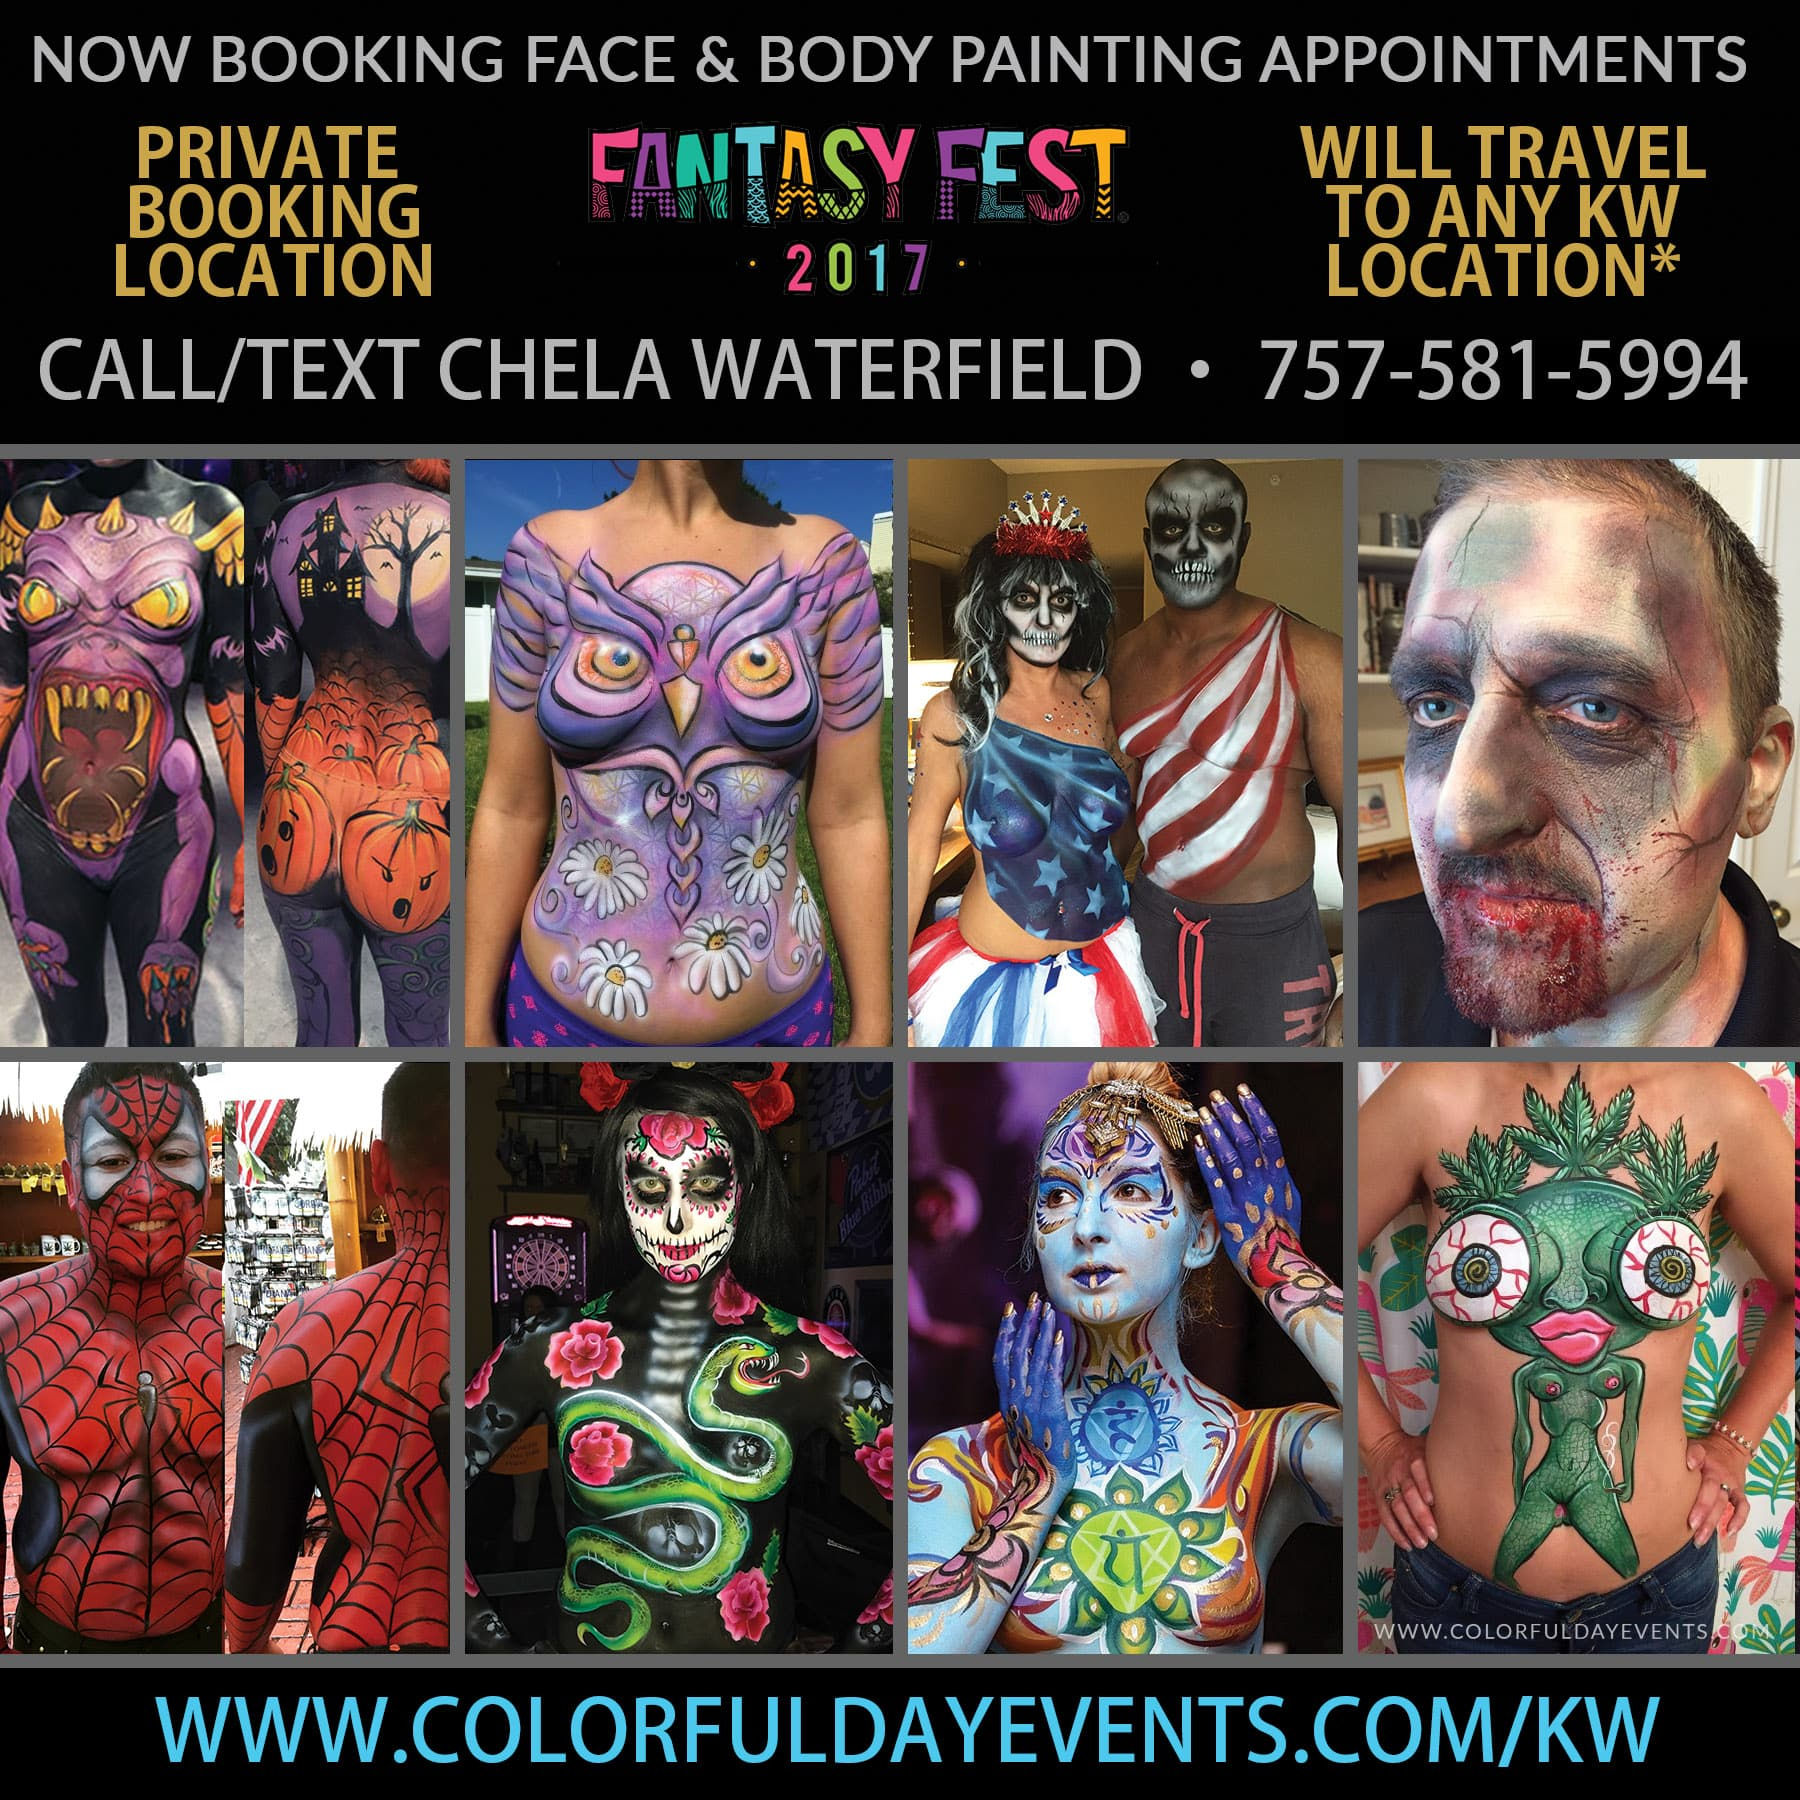 hire a Fantasy Fest body painter